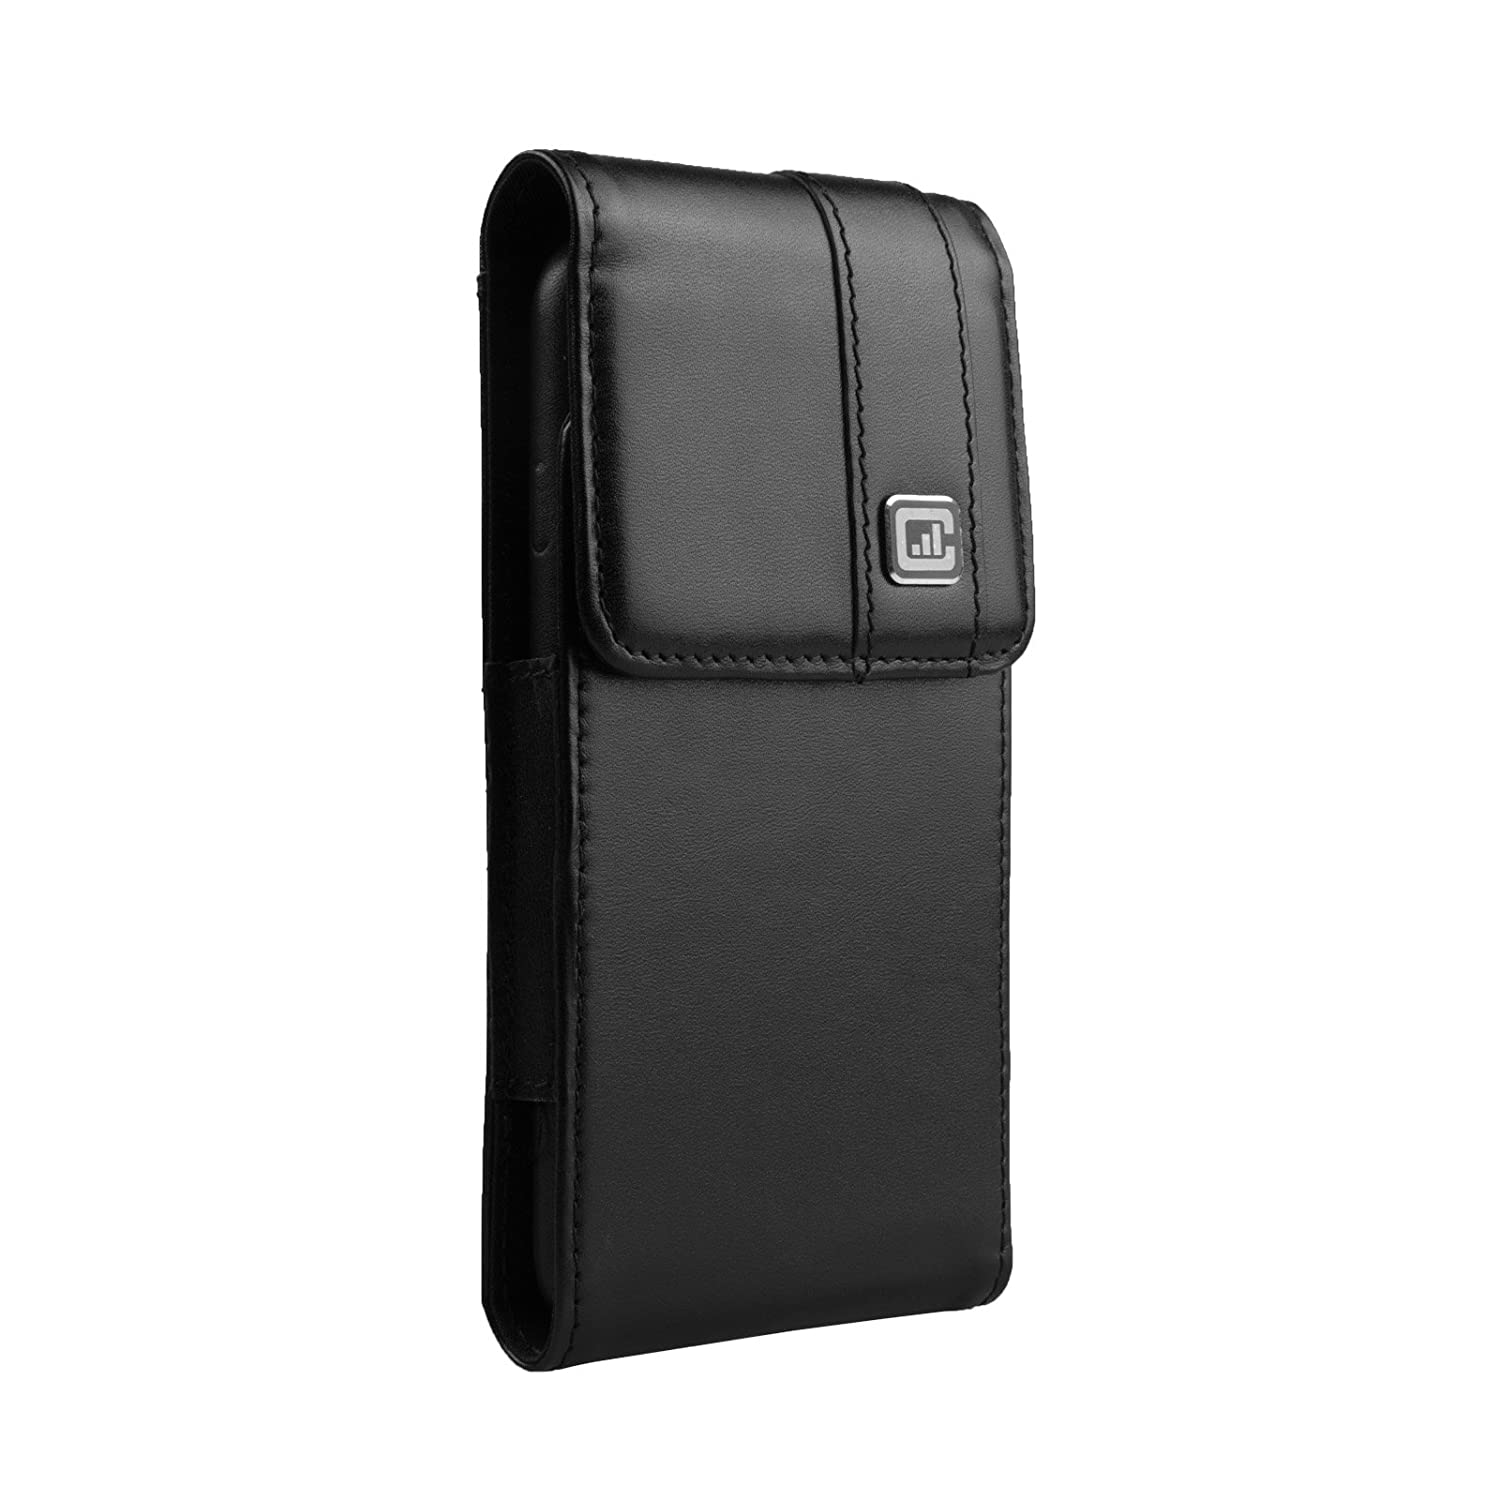 [New Gorilla Clip] CASE123 Mps Mk II TLS Genuine Leather Oversized Vertical Swivel Belt Clip Holster for Samsung Galaxy S7 for use with Slim Cases and TPU Covers - Black Cowhide CA-NC-A202-MKIIV-BK-SGS7_TLS